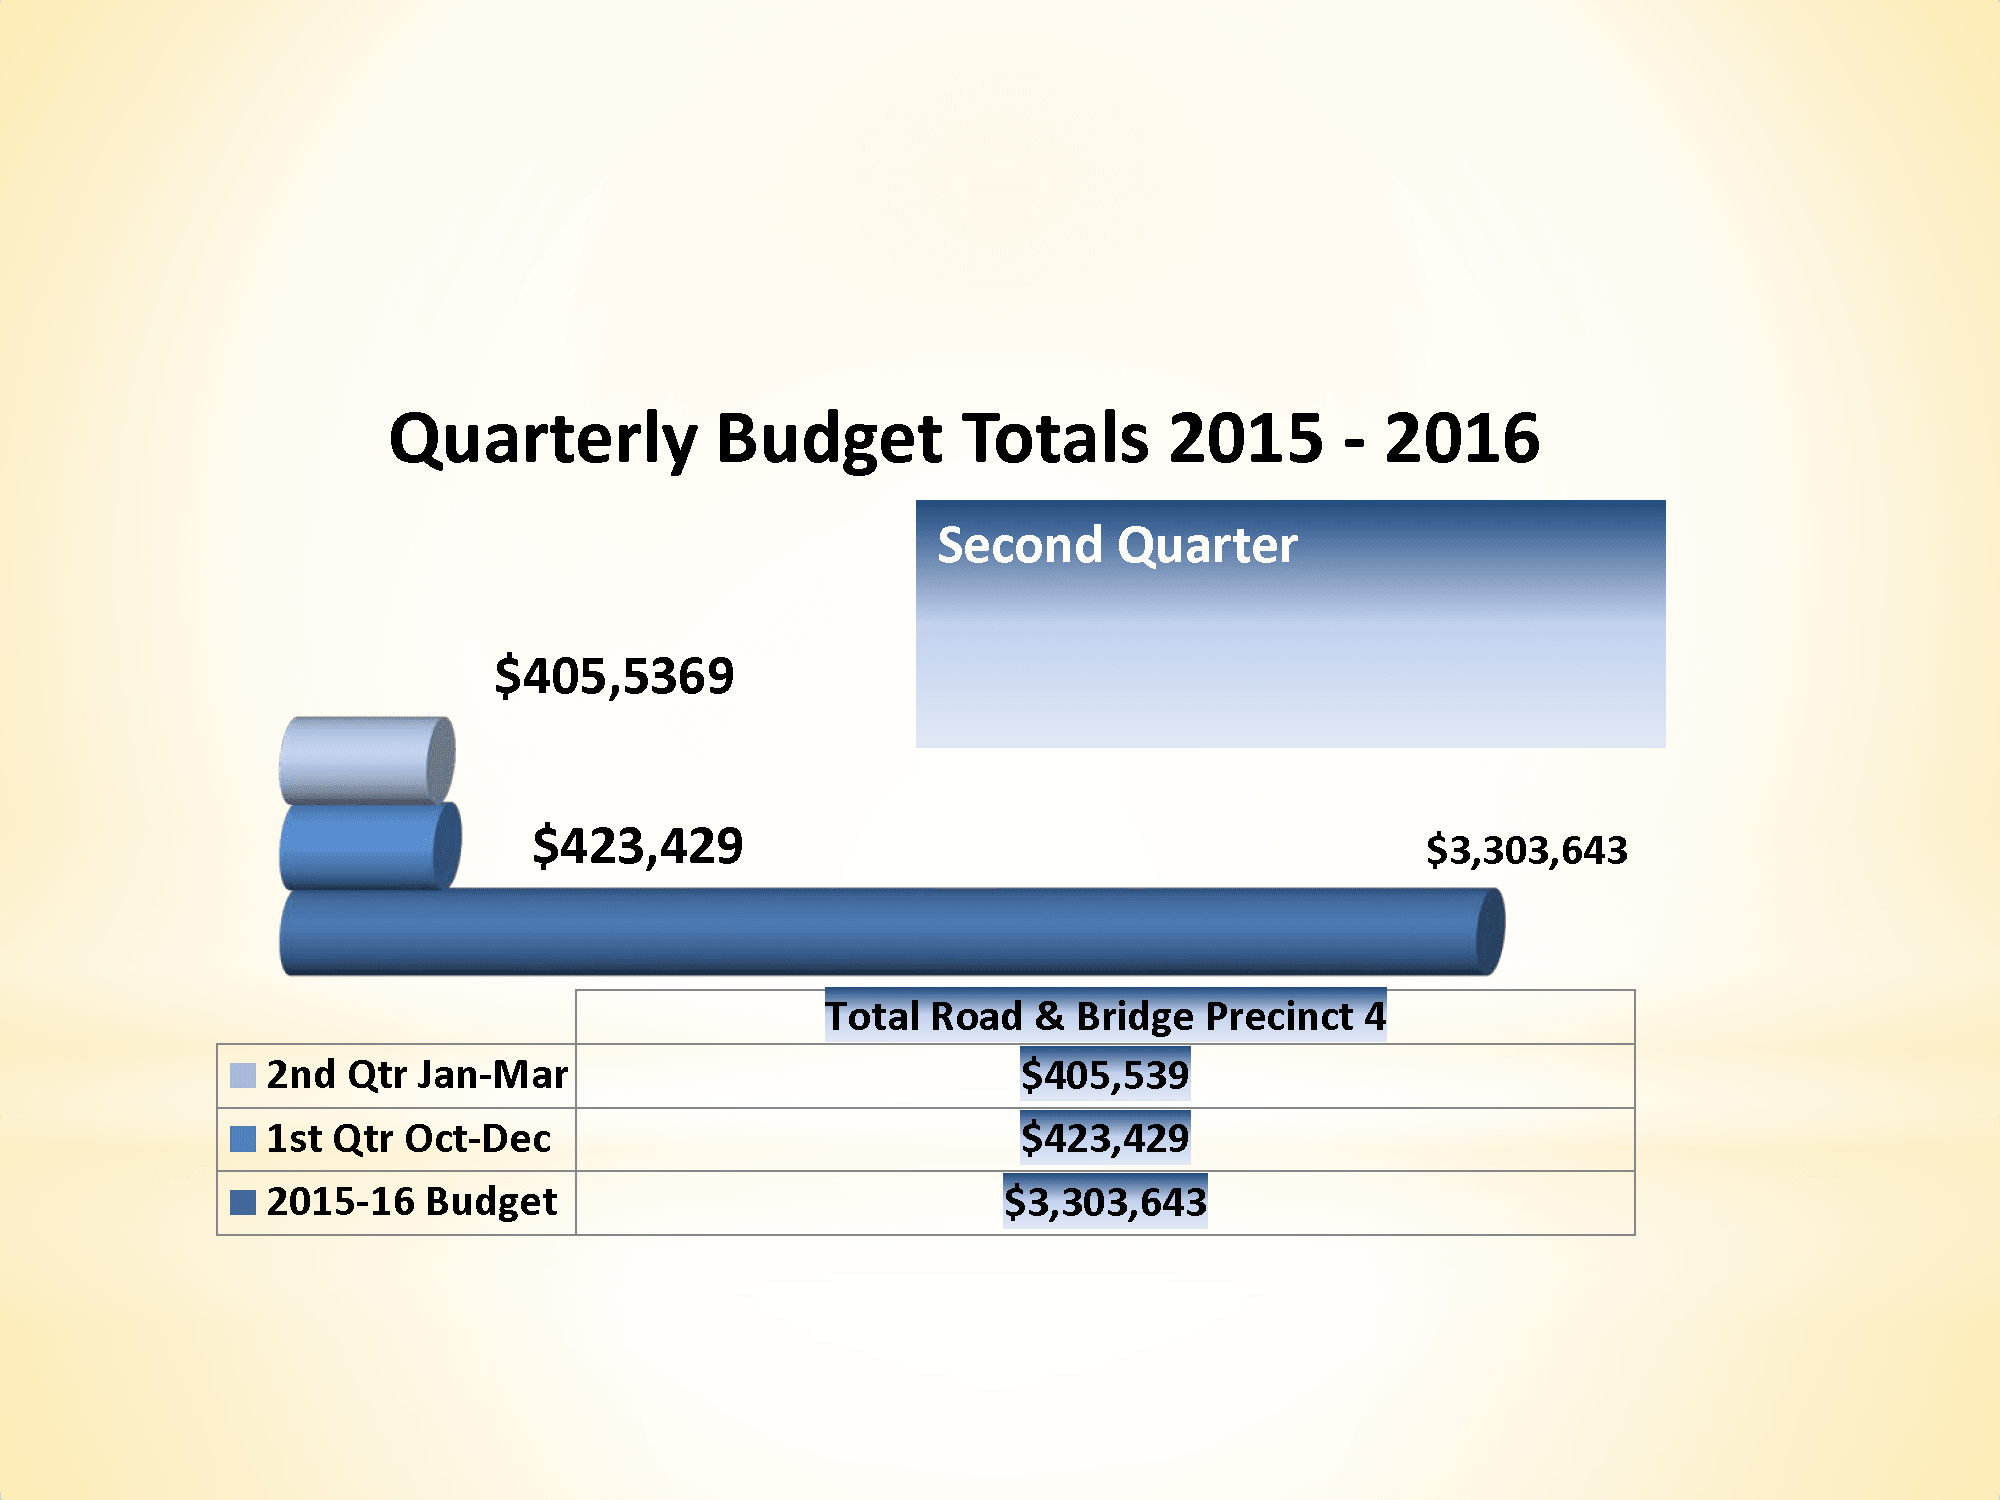 McLennan County Precinct 4 Road & Bridge Quarterly Budget Totals